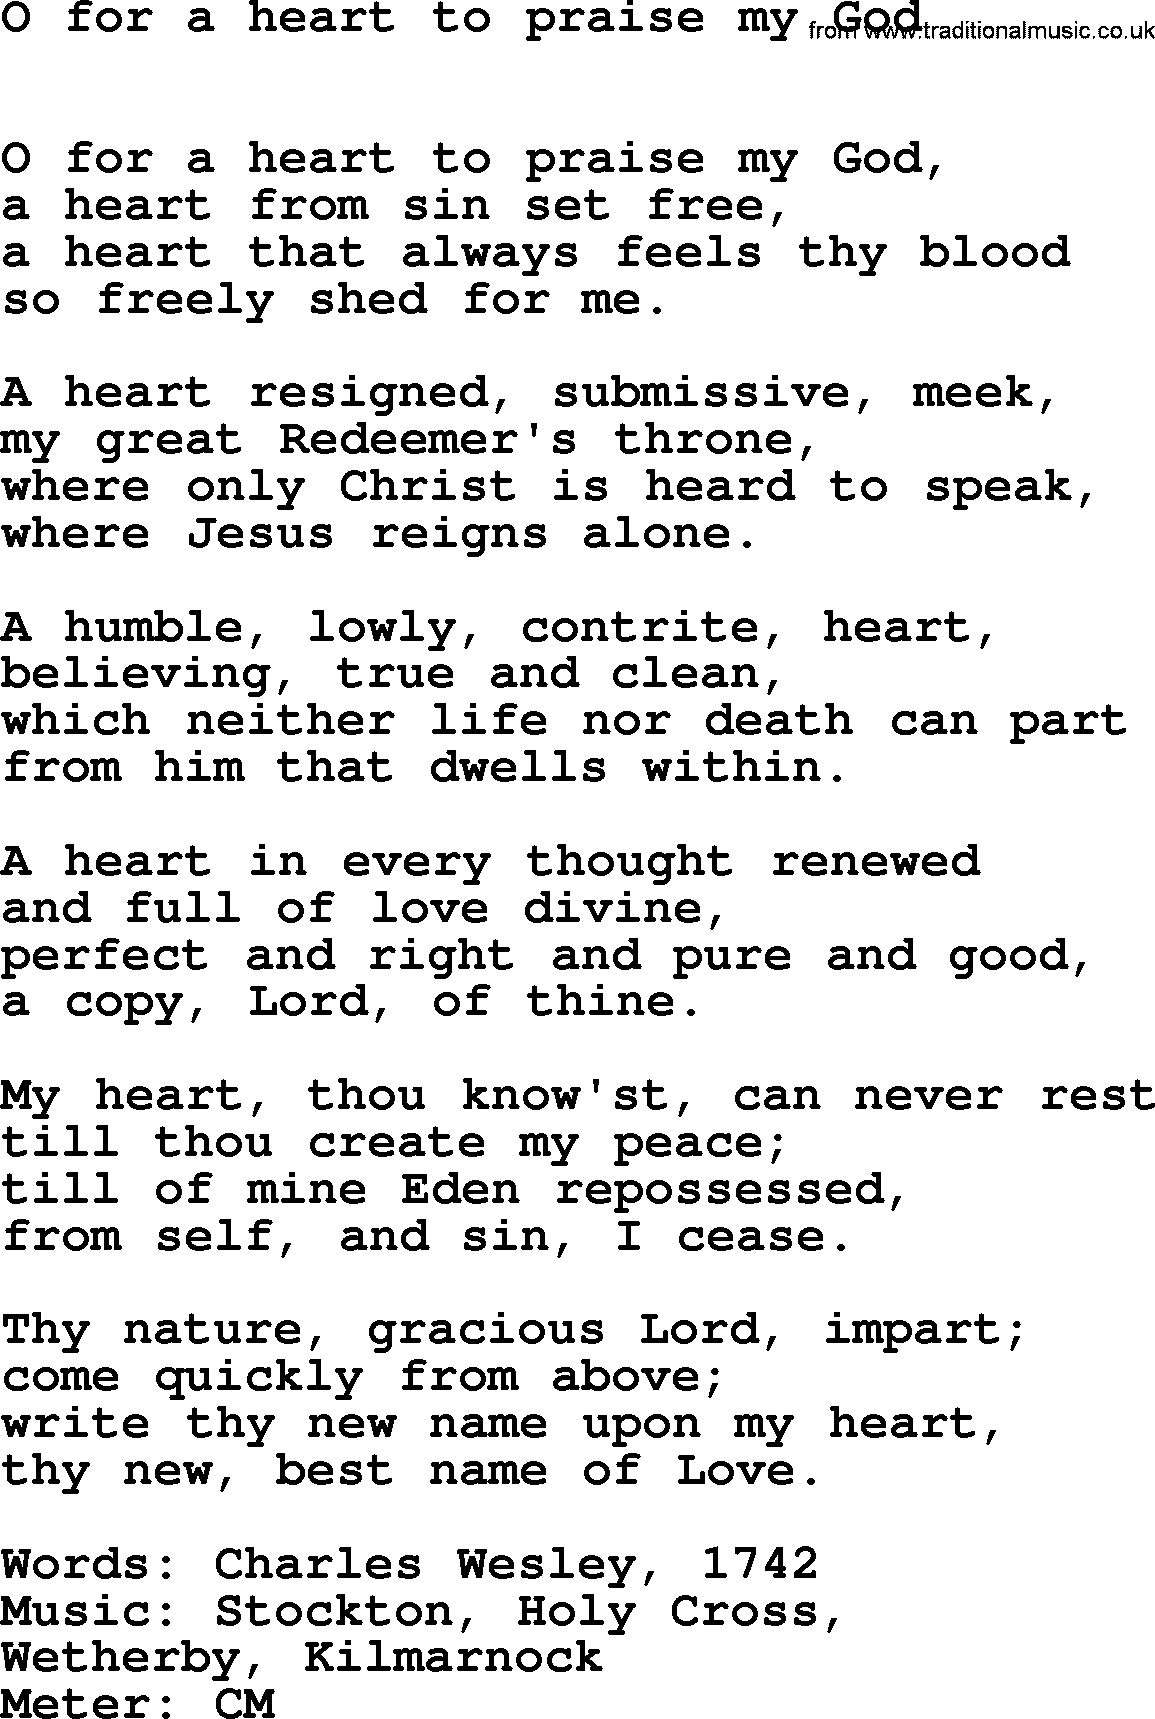 Lent Hymns, Song: O For A Heart To Praise My God - lyrics ...